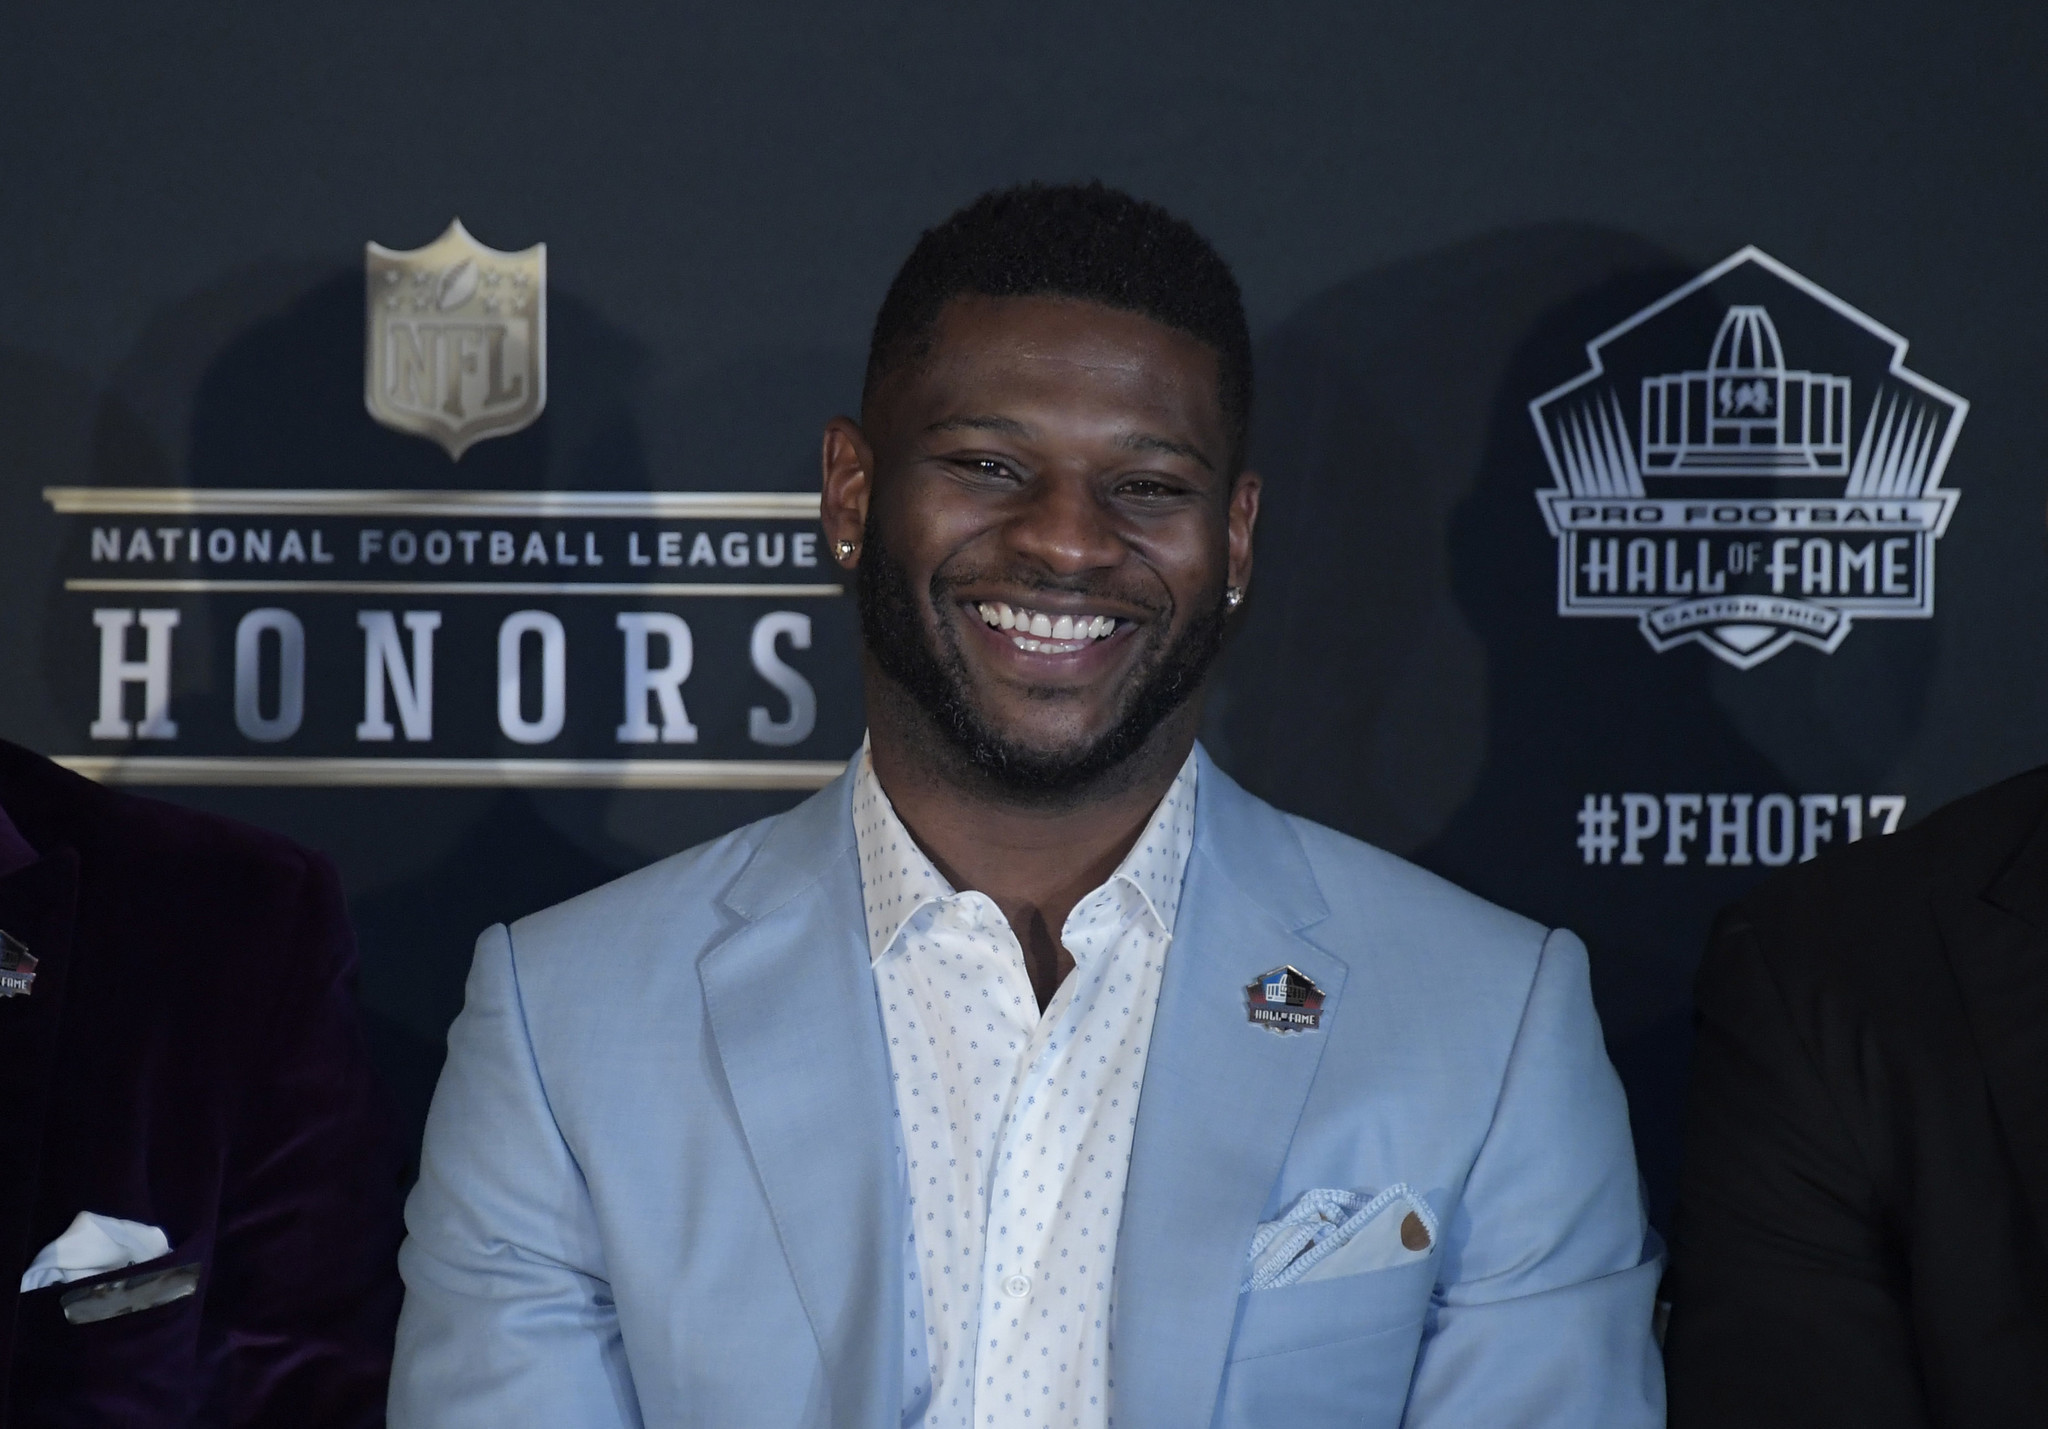 Ladainian Tomlinson Joins La Chargers The San Diego